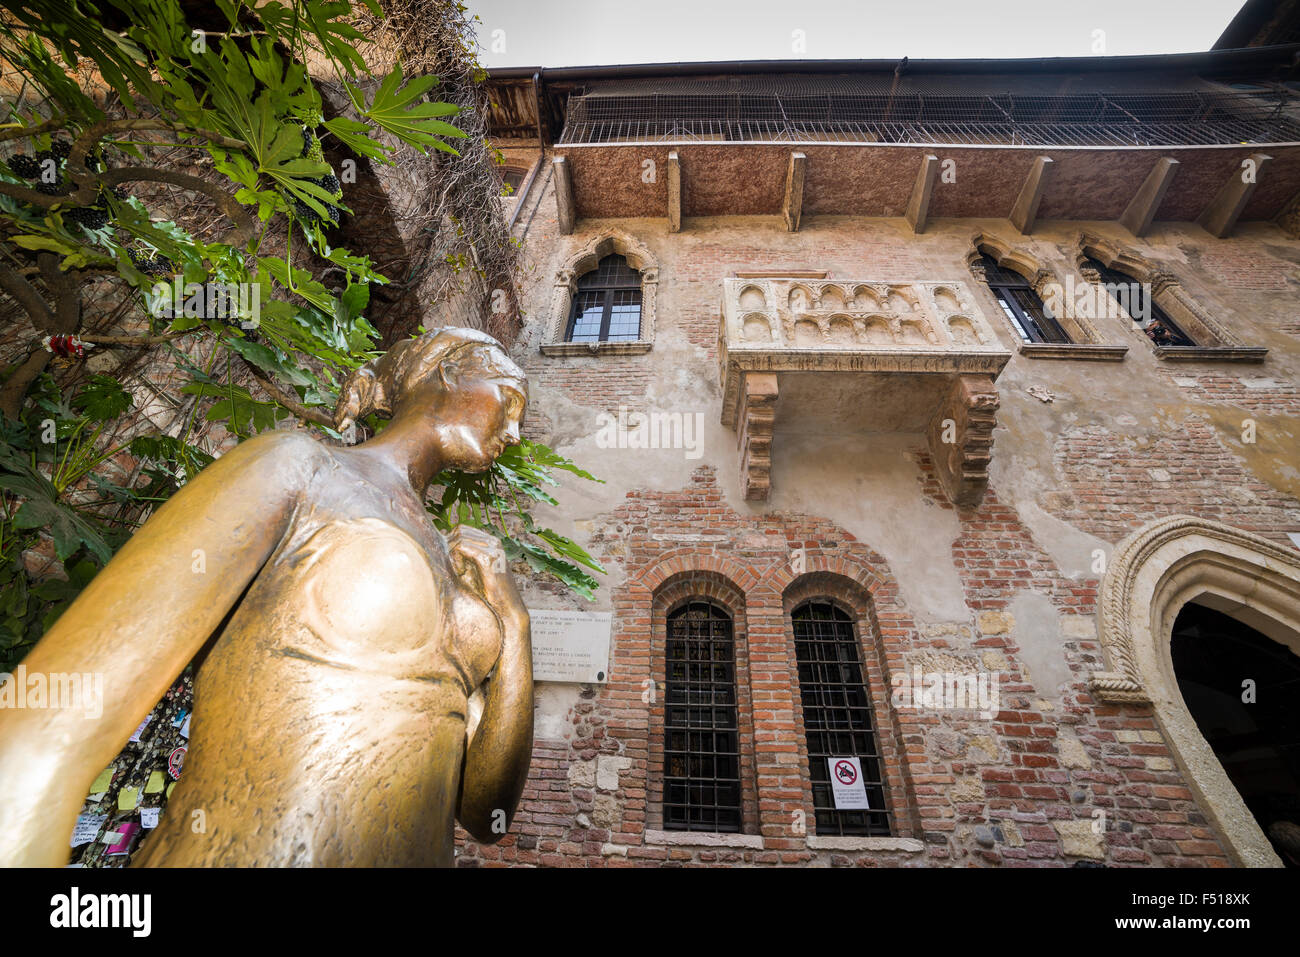 The brass statue of Juliet in the backyard of Juliets house with the famous balcony - Stock Image